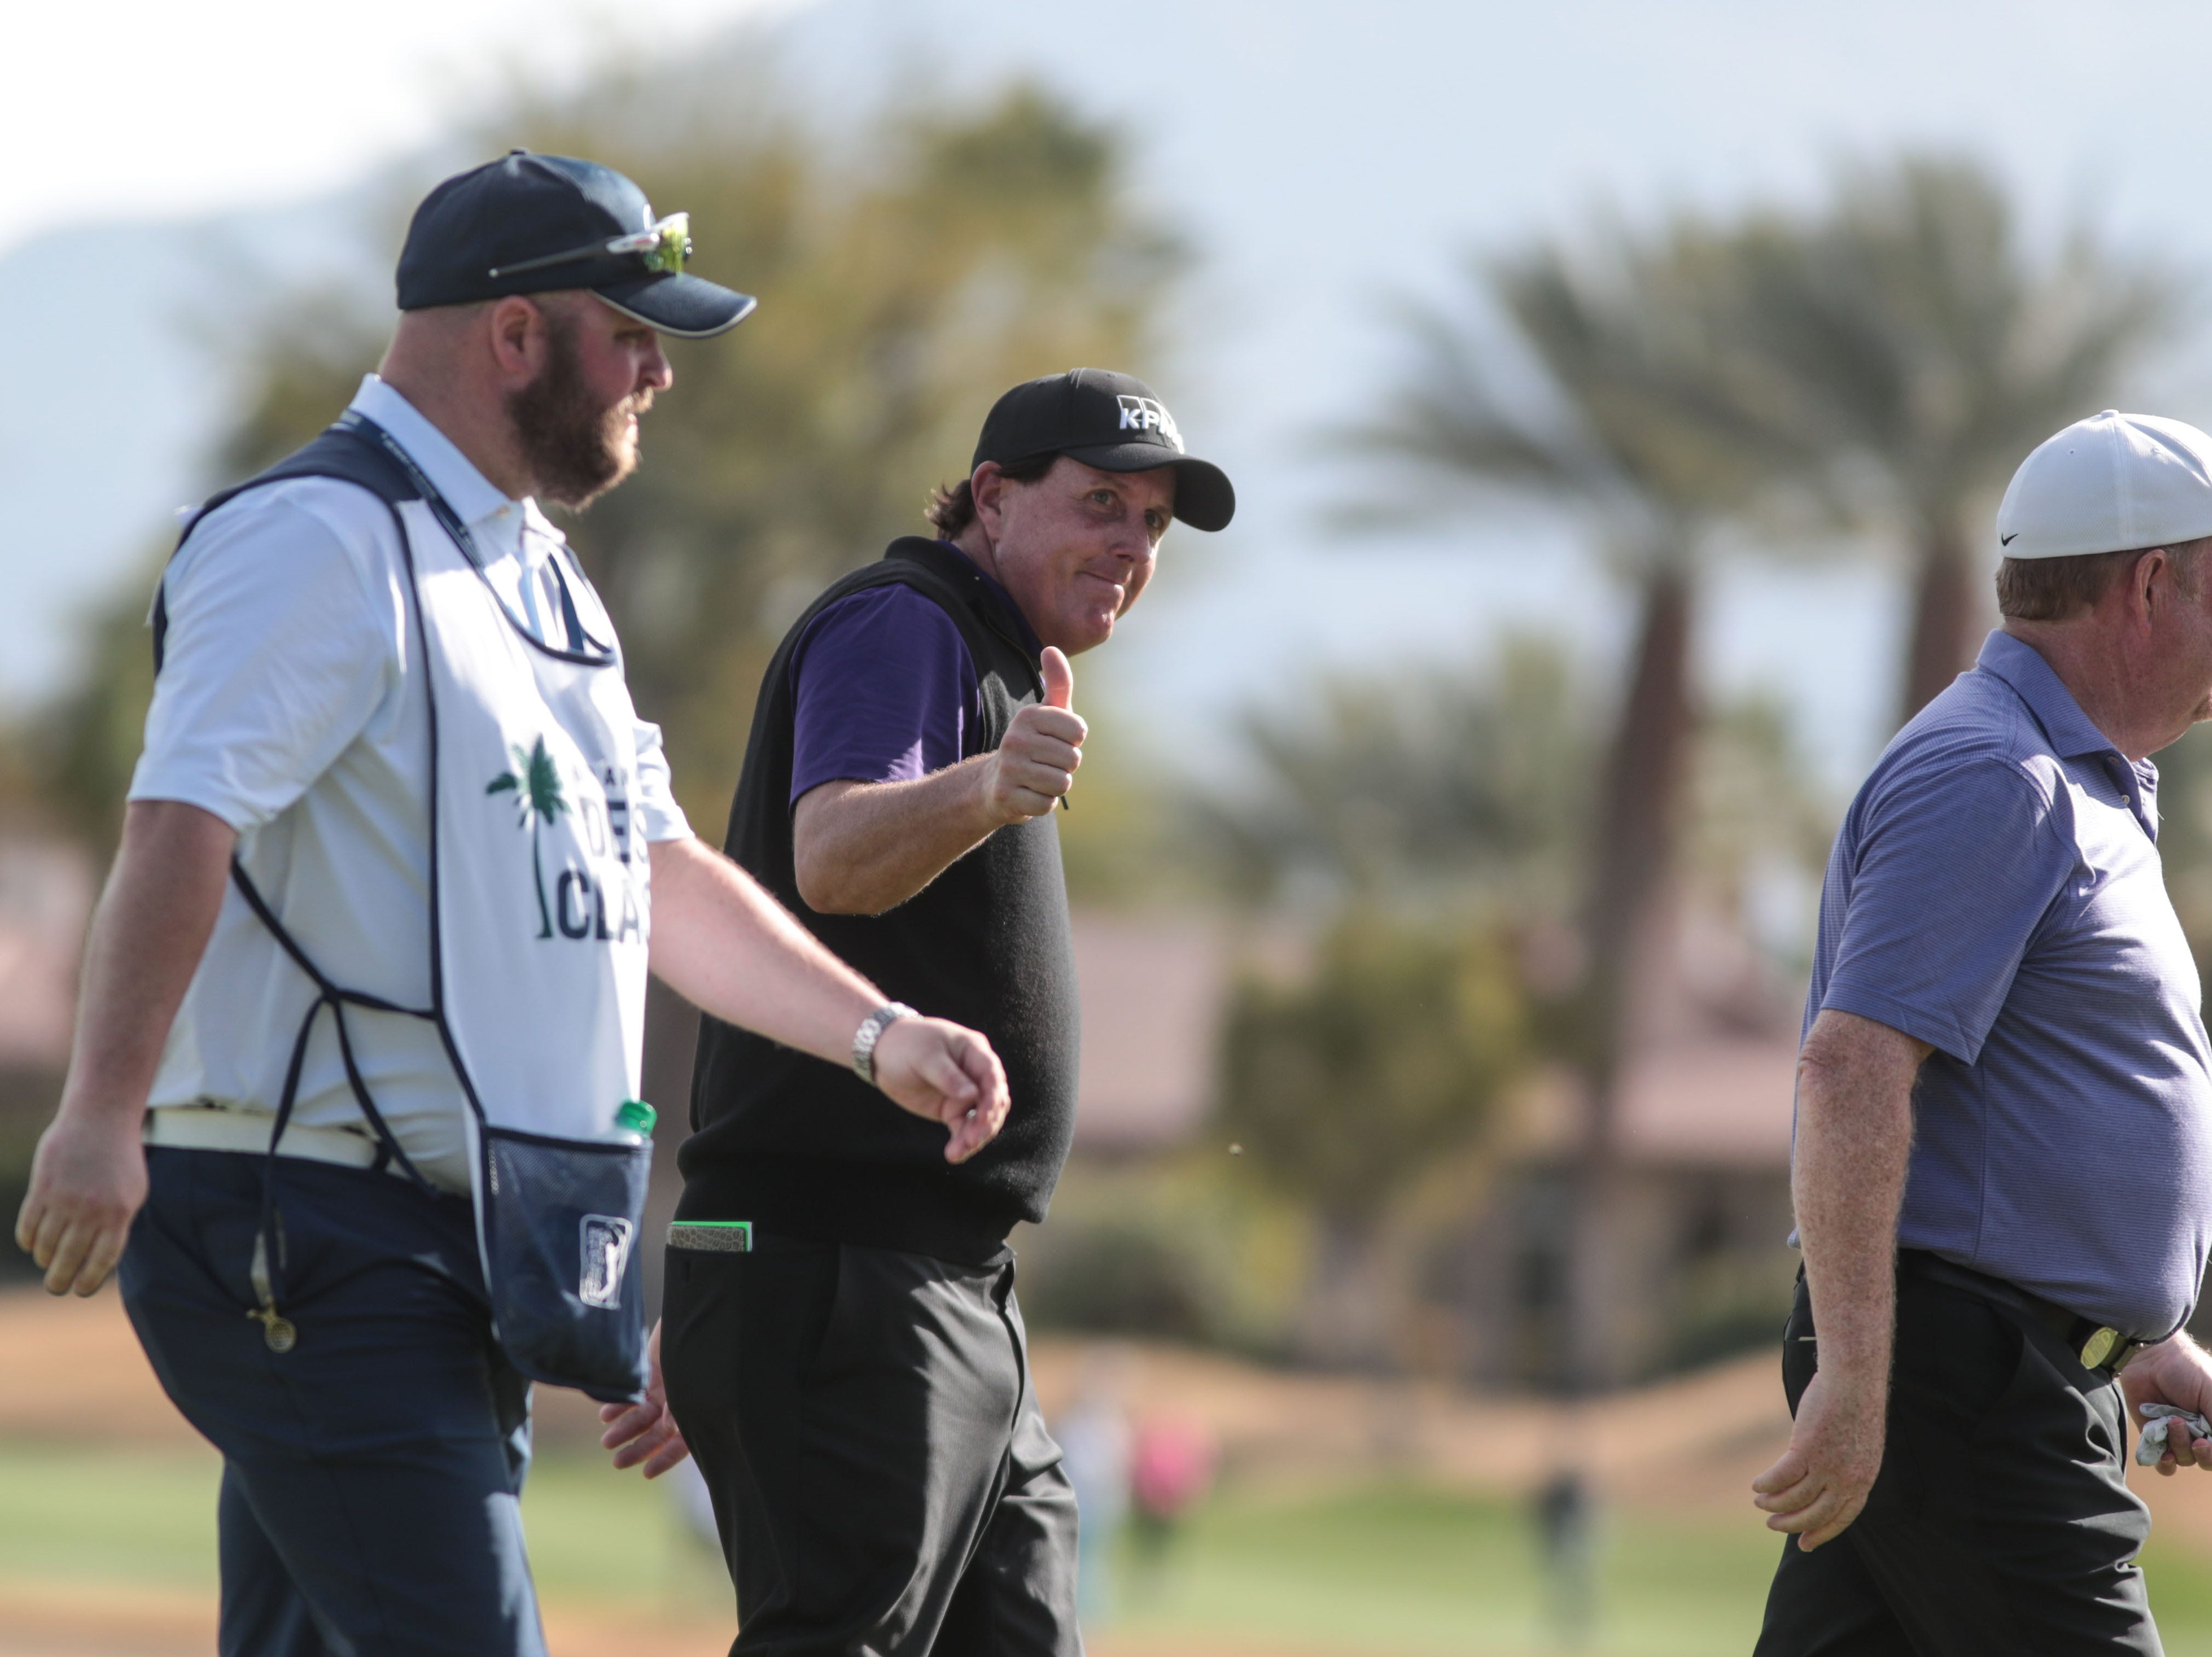 Phil Mickelson gives spectators the thumbs up on the Nicklaus Tournament Course at PGA West in La Quinta during the 2nd round of the Desert Classic on Friday, January 18, 2019. He finished his day 16 under so far for the tournament.